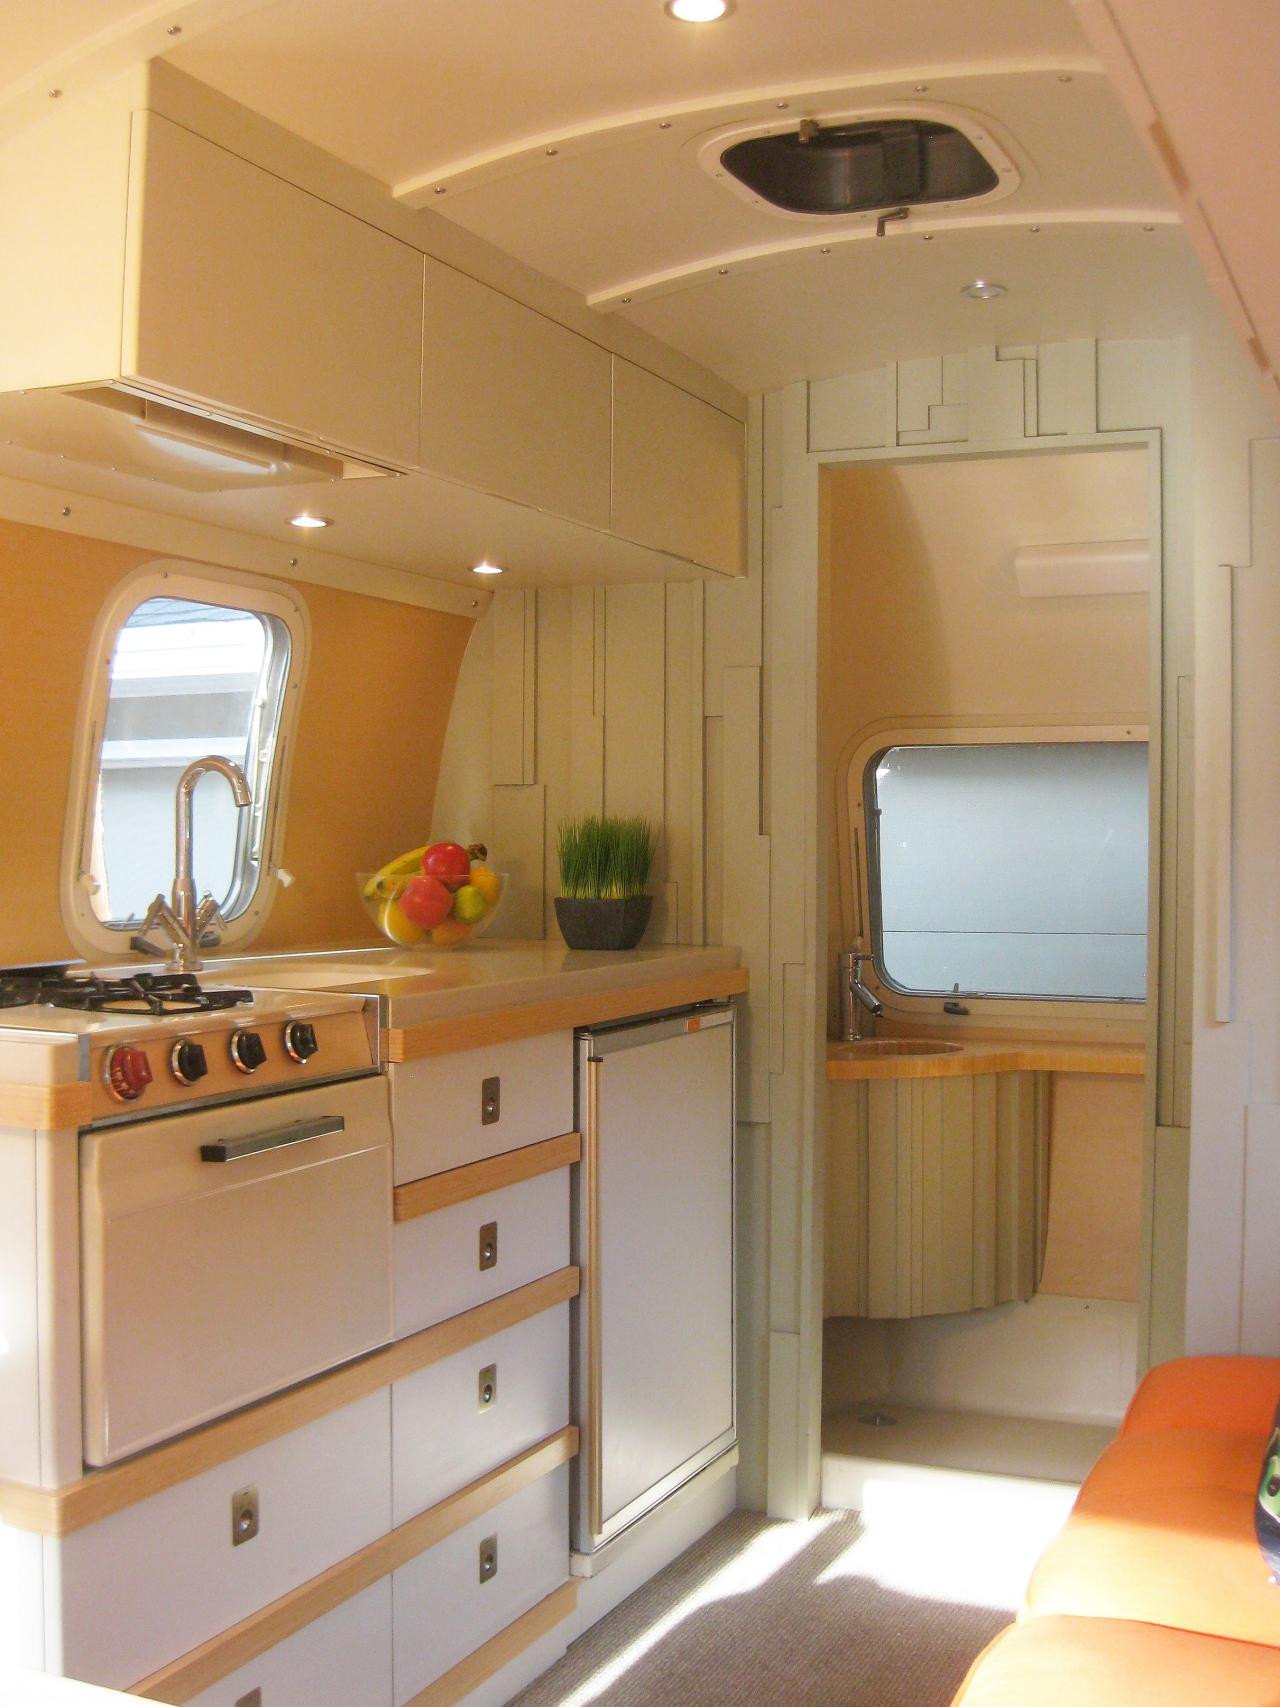 Interesting Airstream Interior Design Small Homes the Move